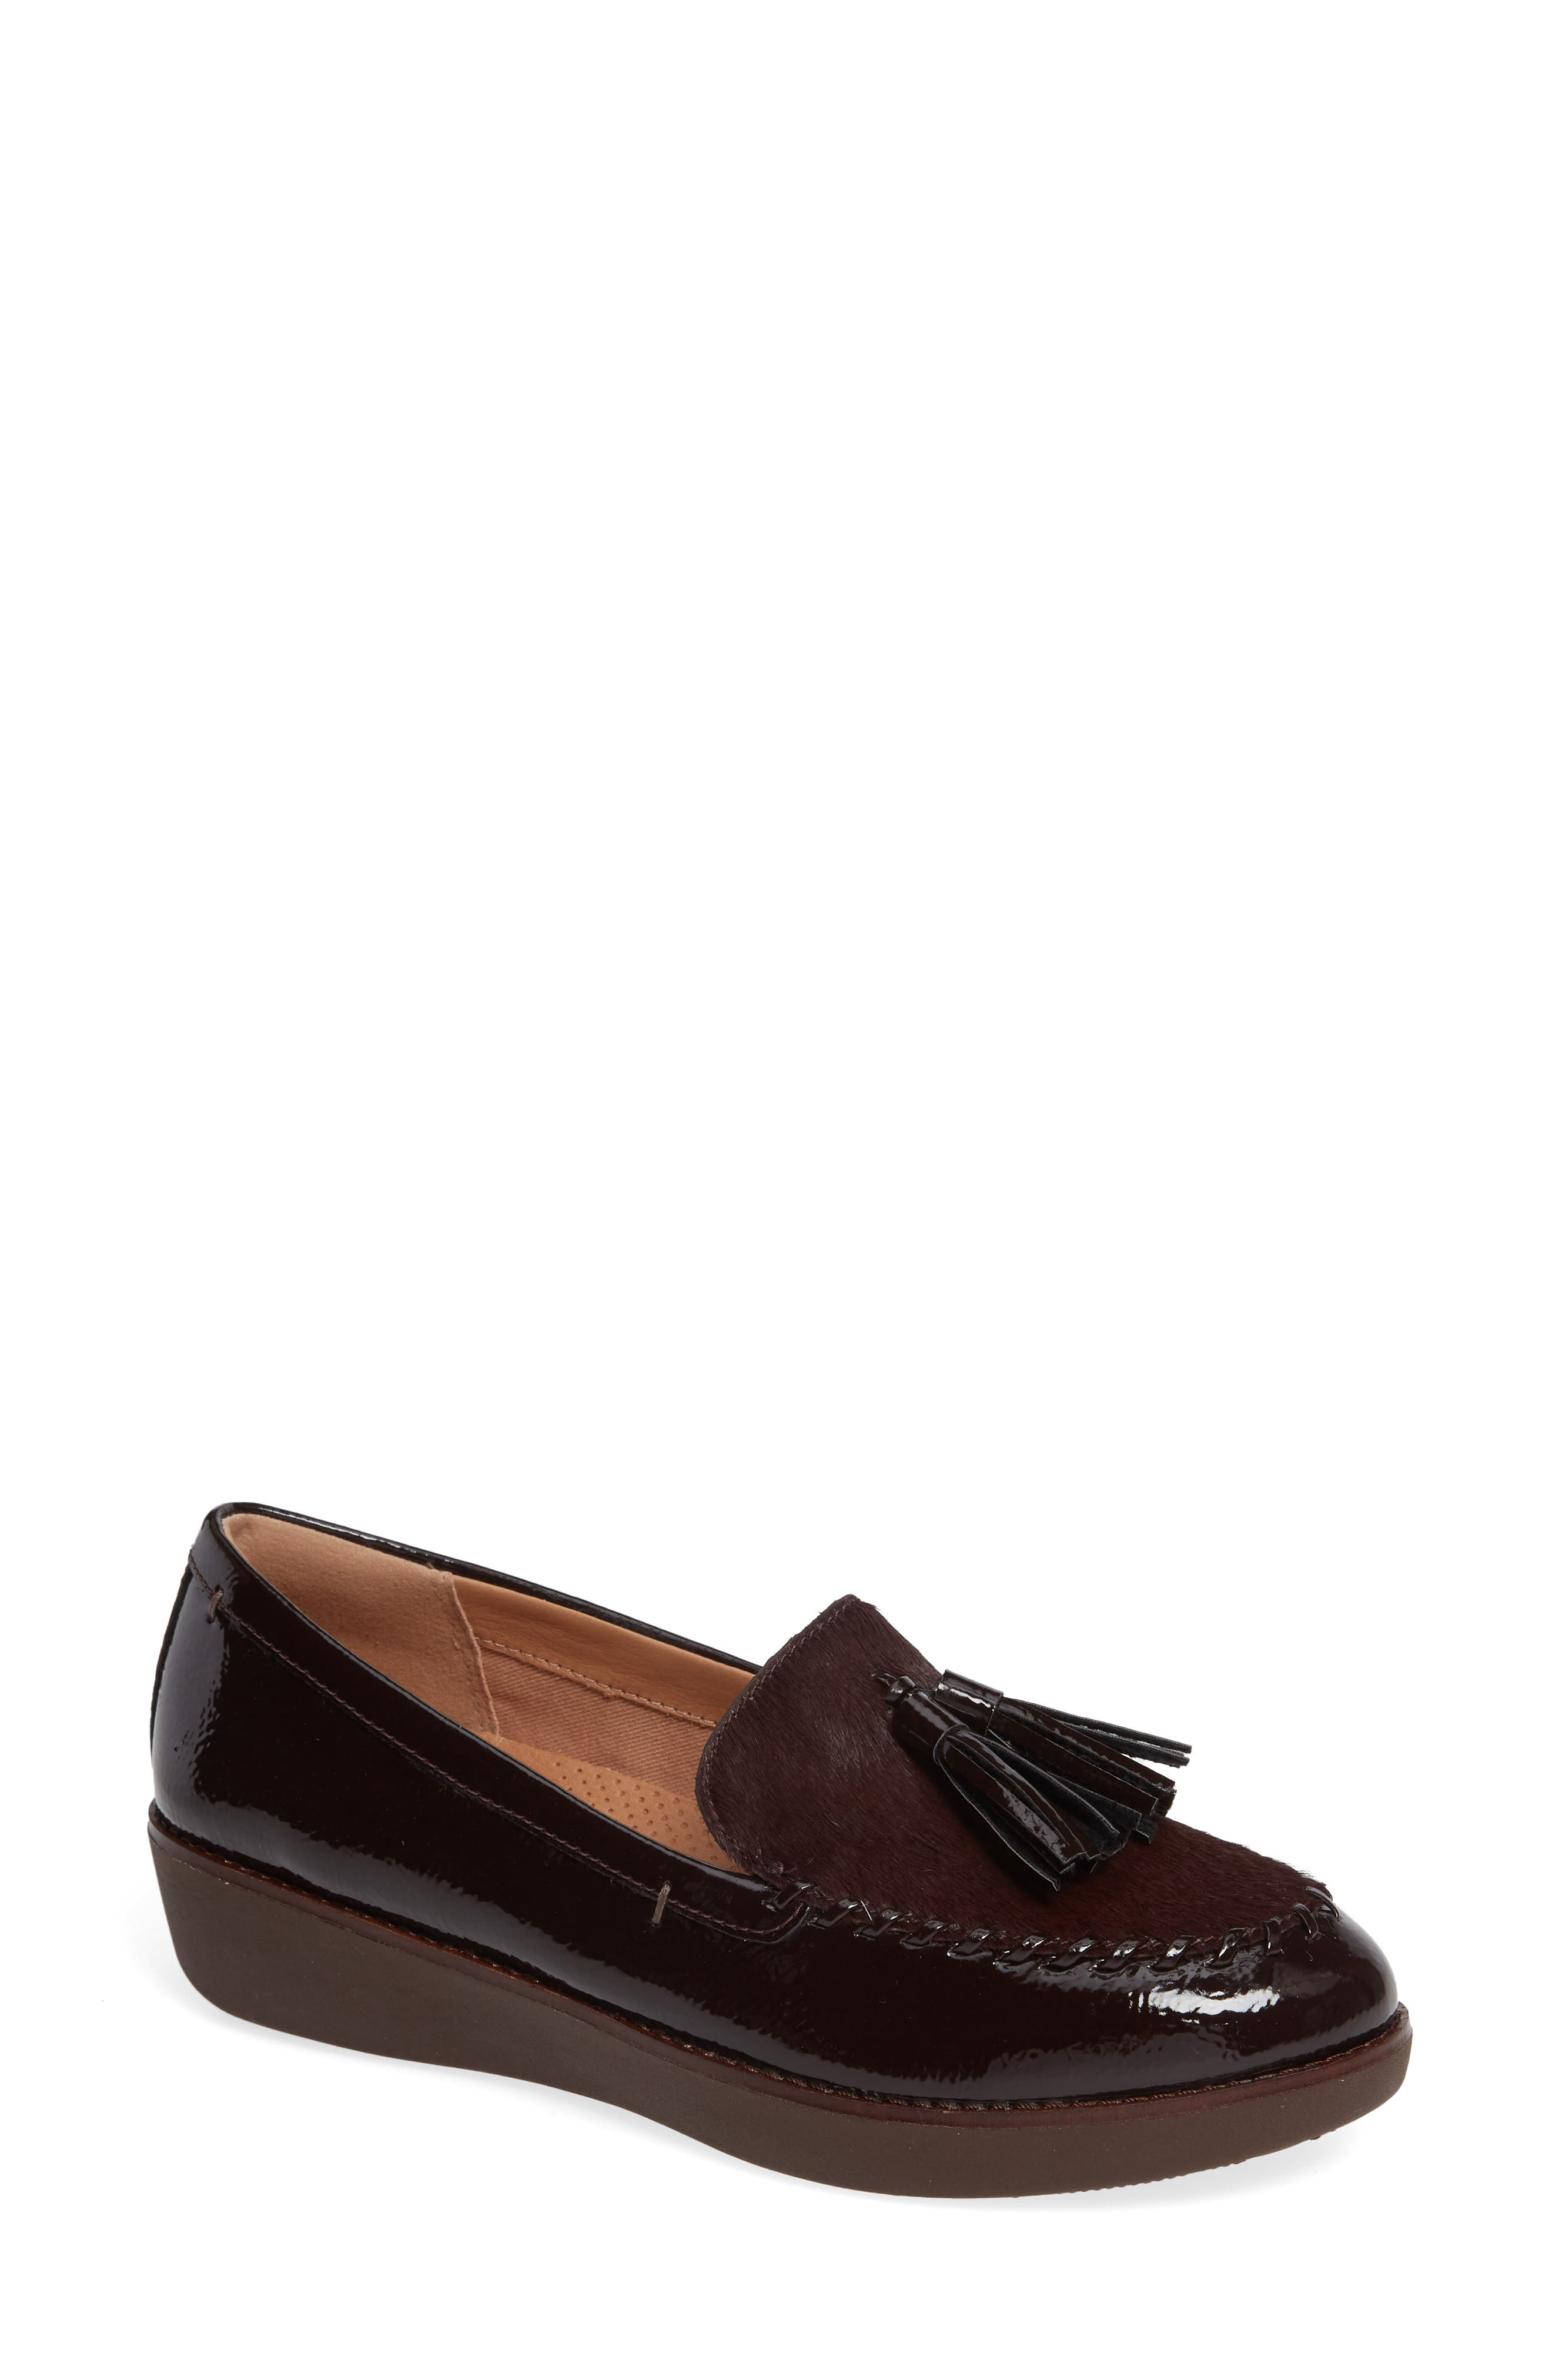 PAIGE GENUINE CALF HAIR LOAFER